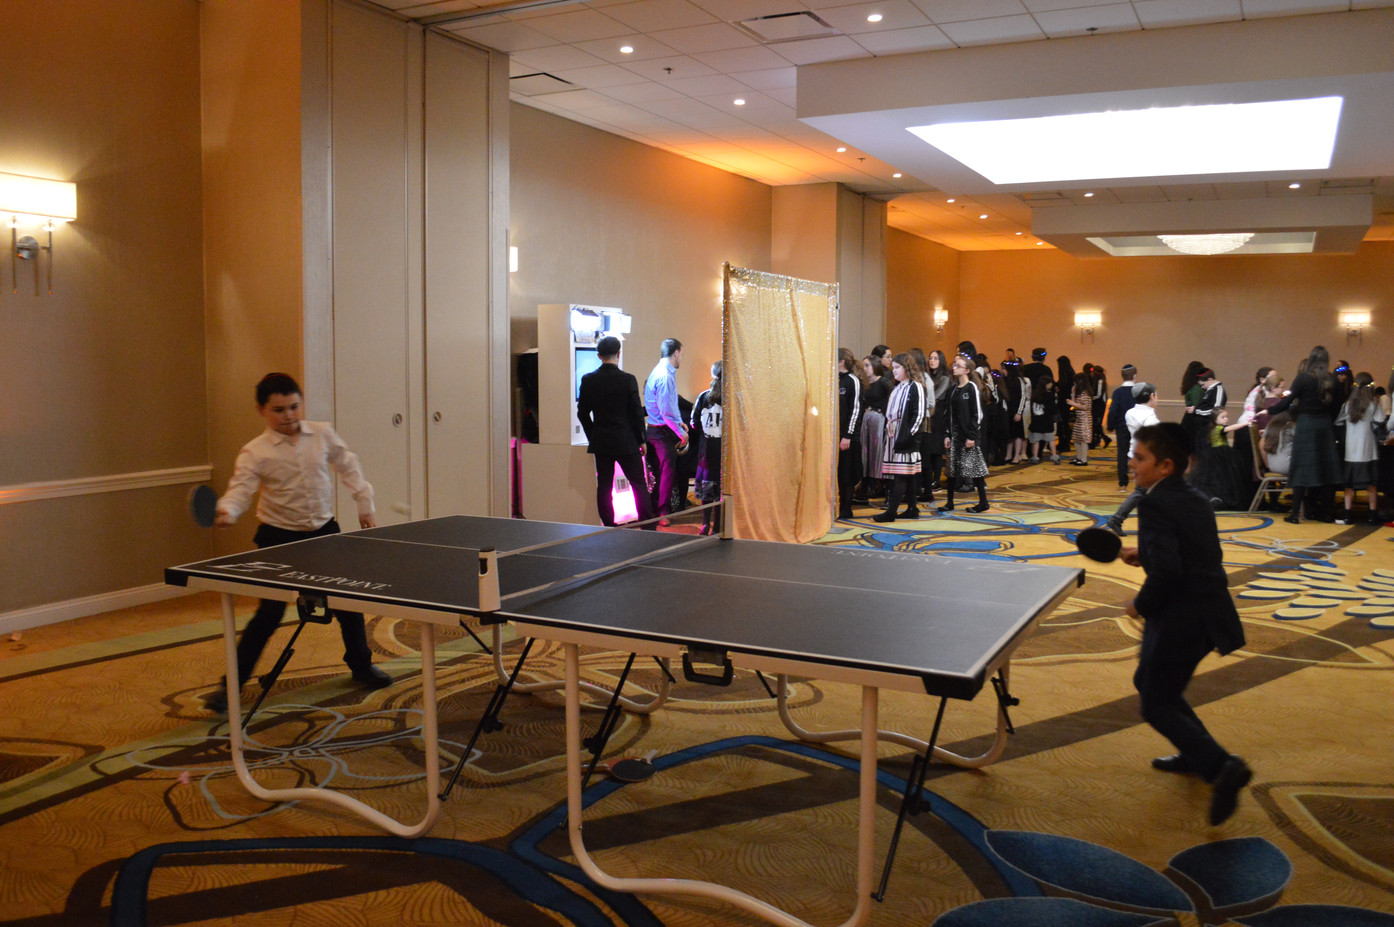 Two-Boys-Plays-Table-Tennis-Game.JPG